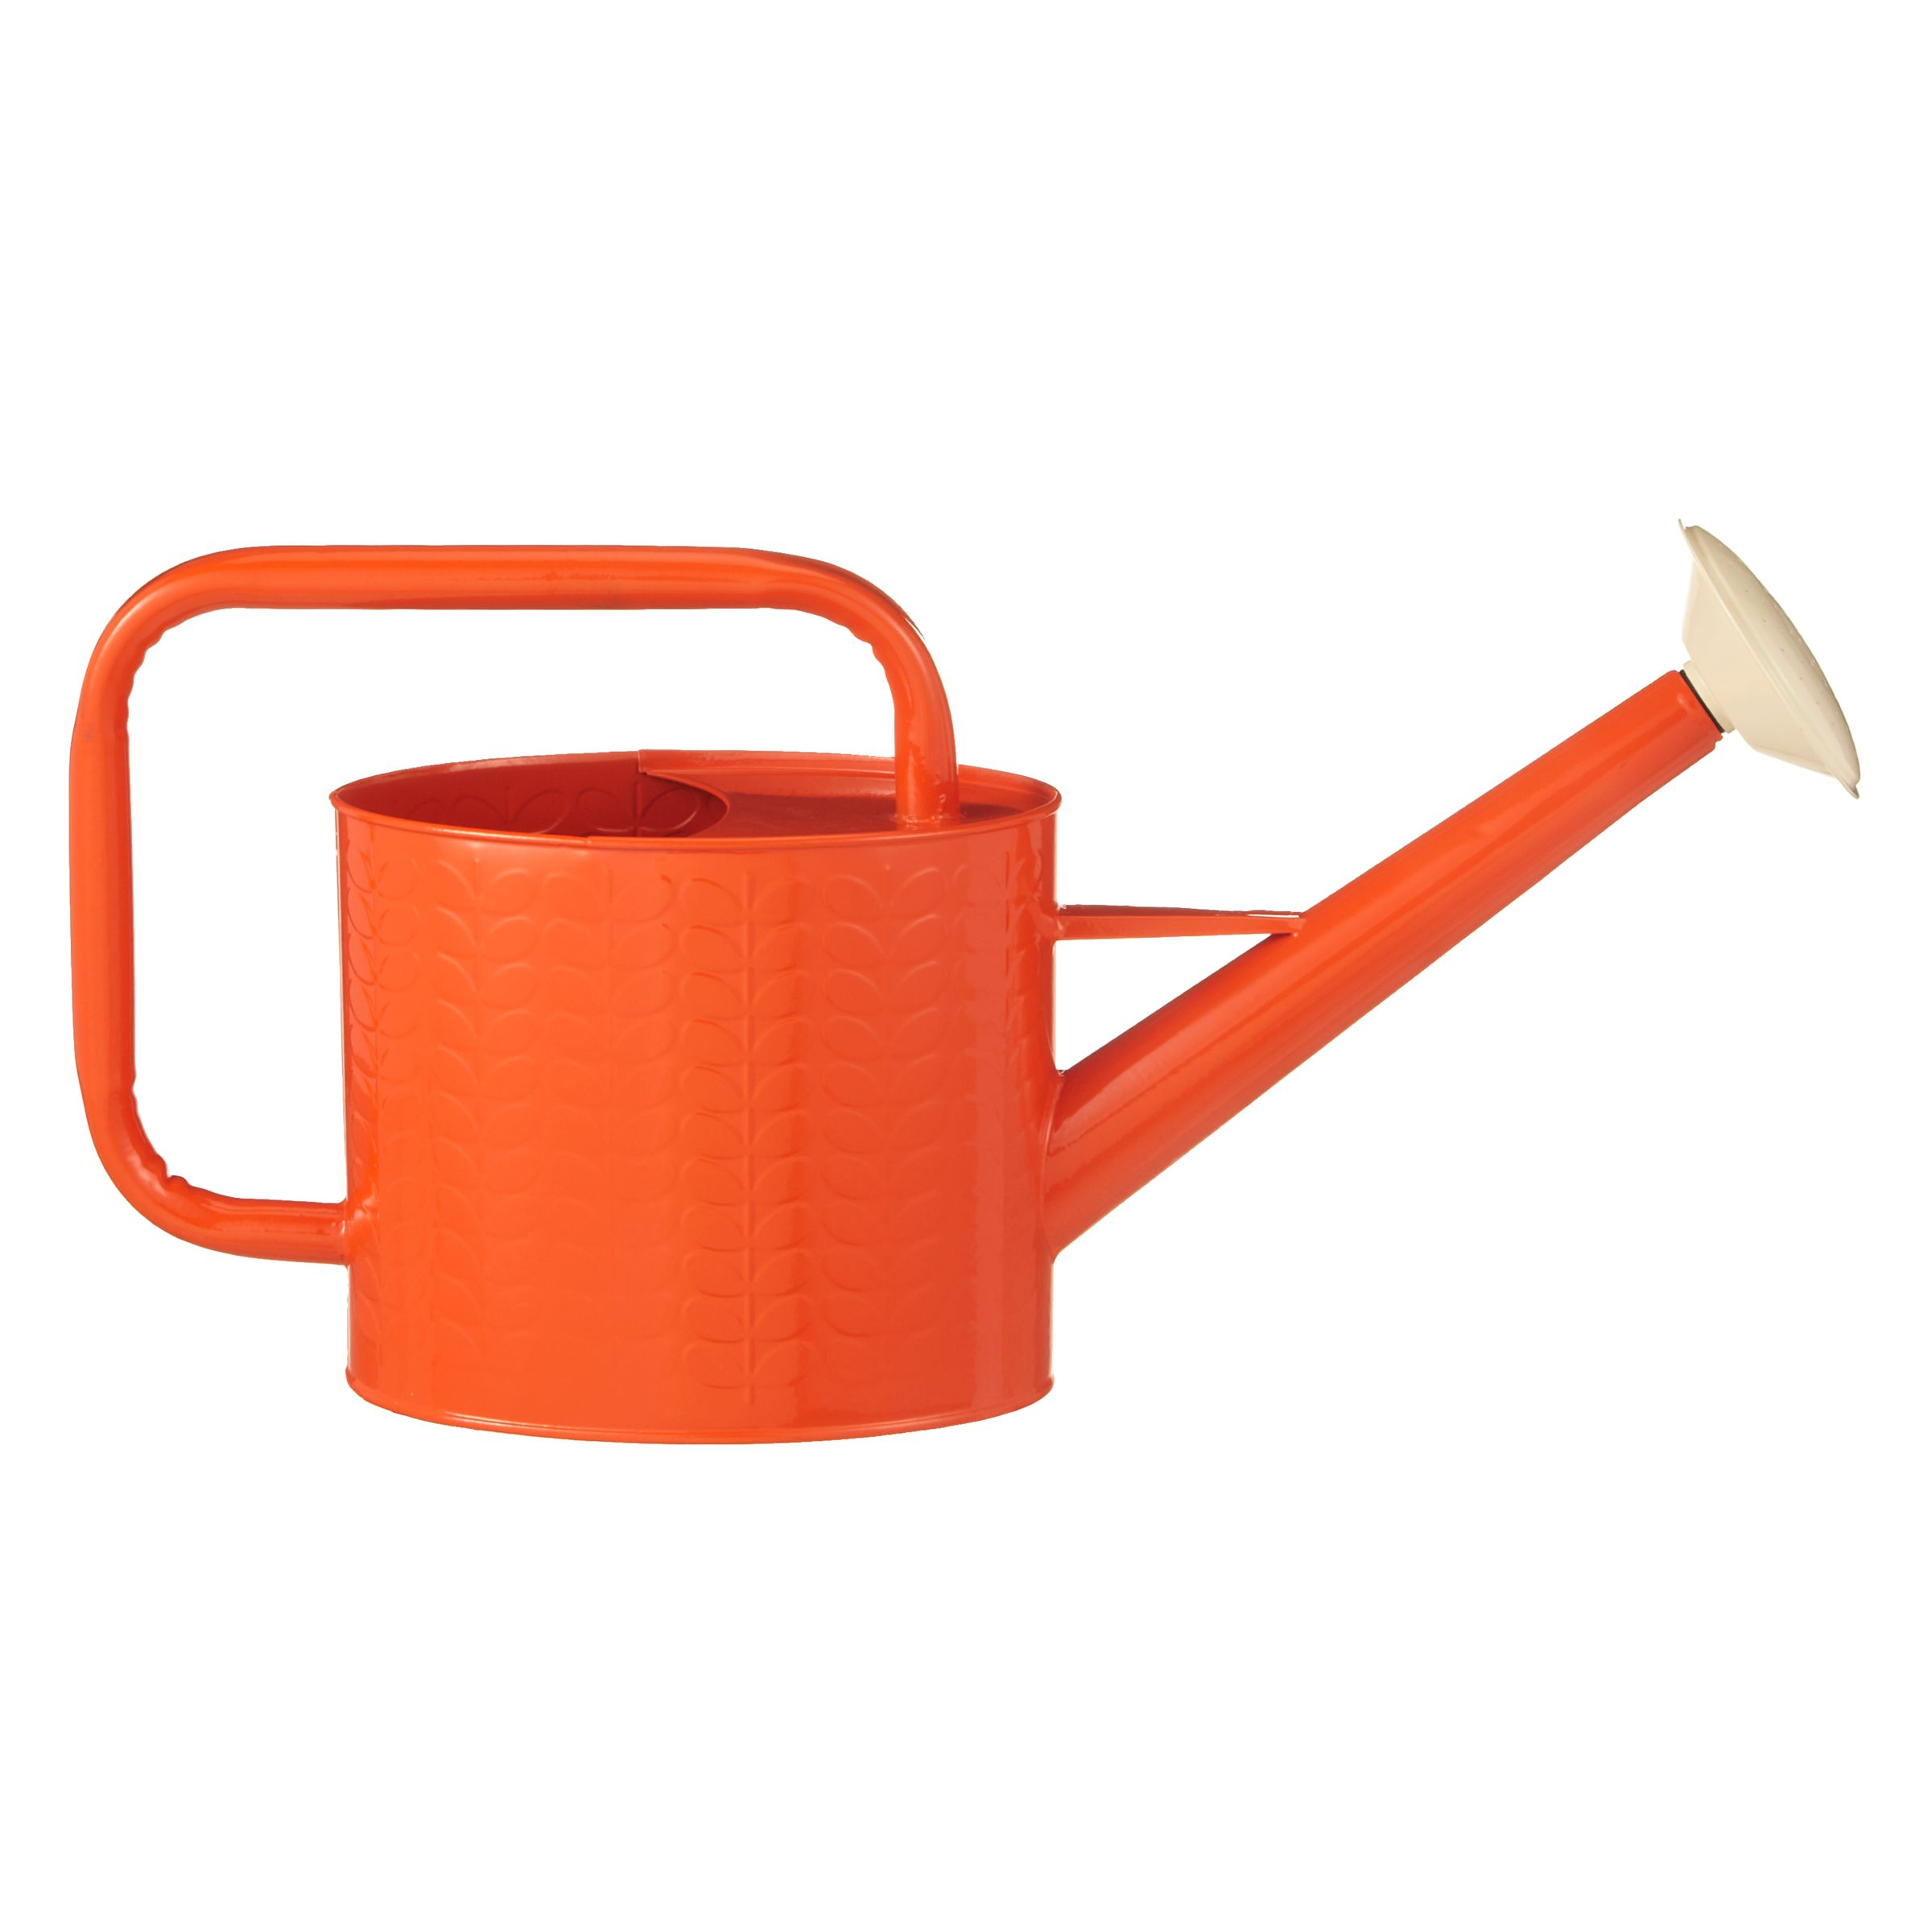 Orla Kiely Watering Can, Orange